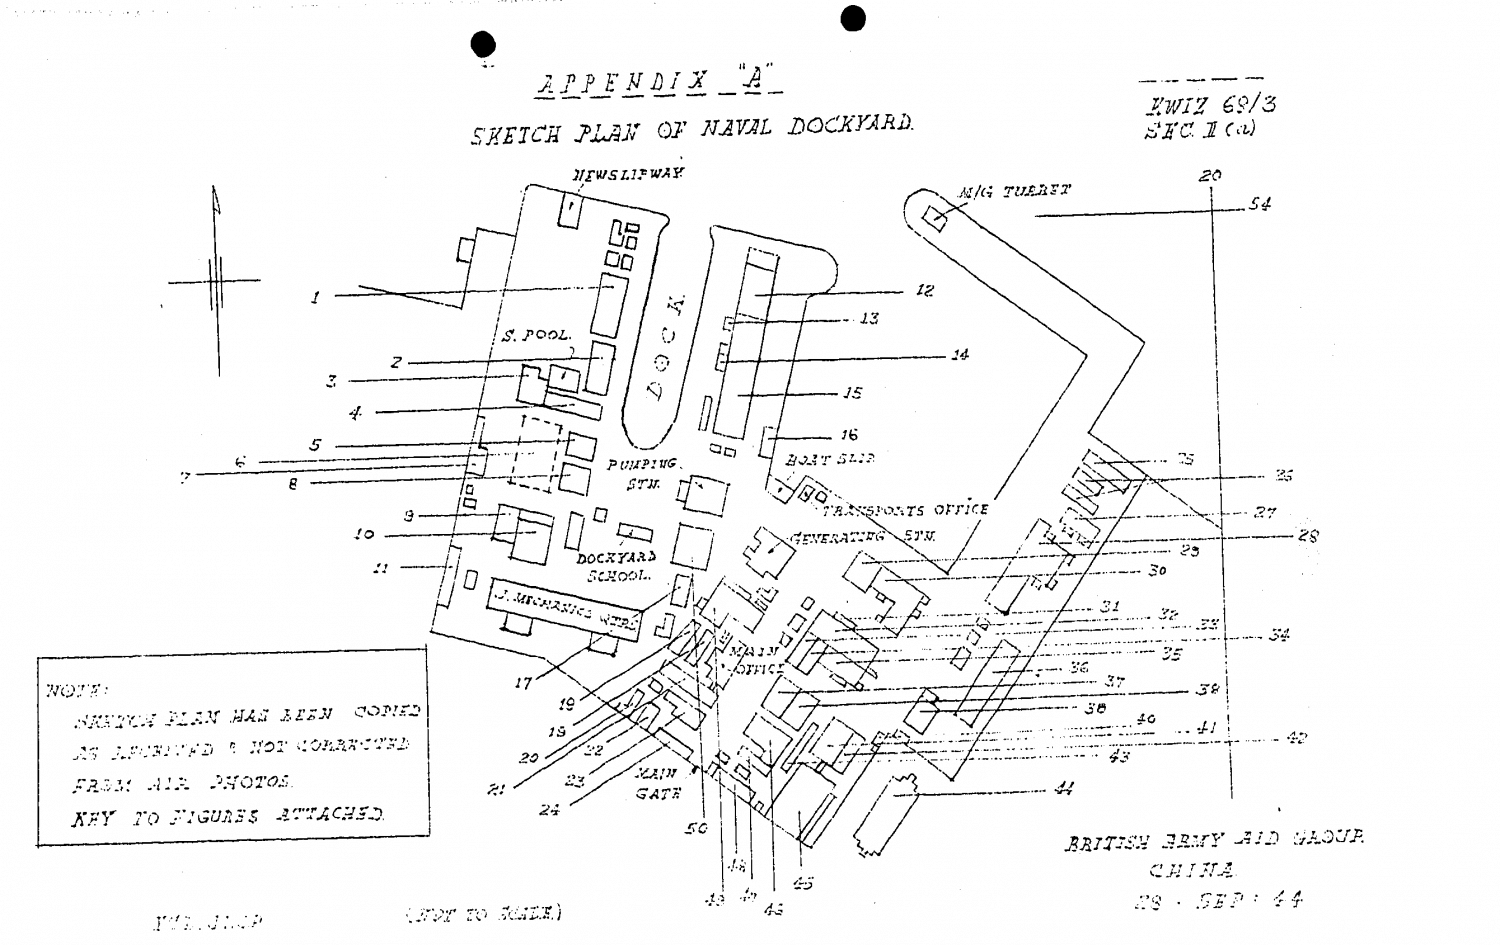 Royal Naval Dockyard map Sept 1944 BAAG